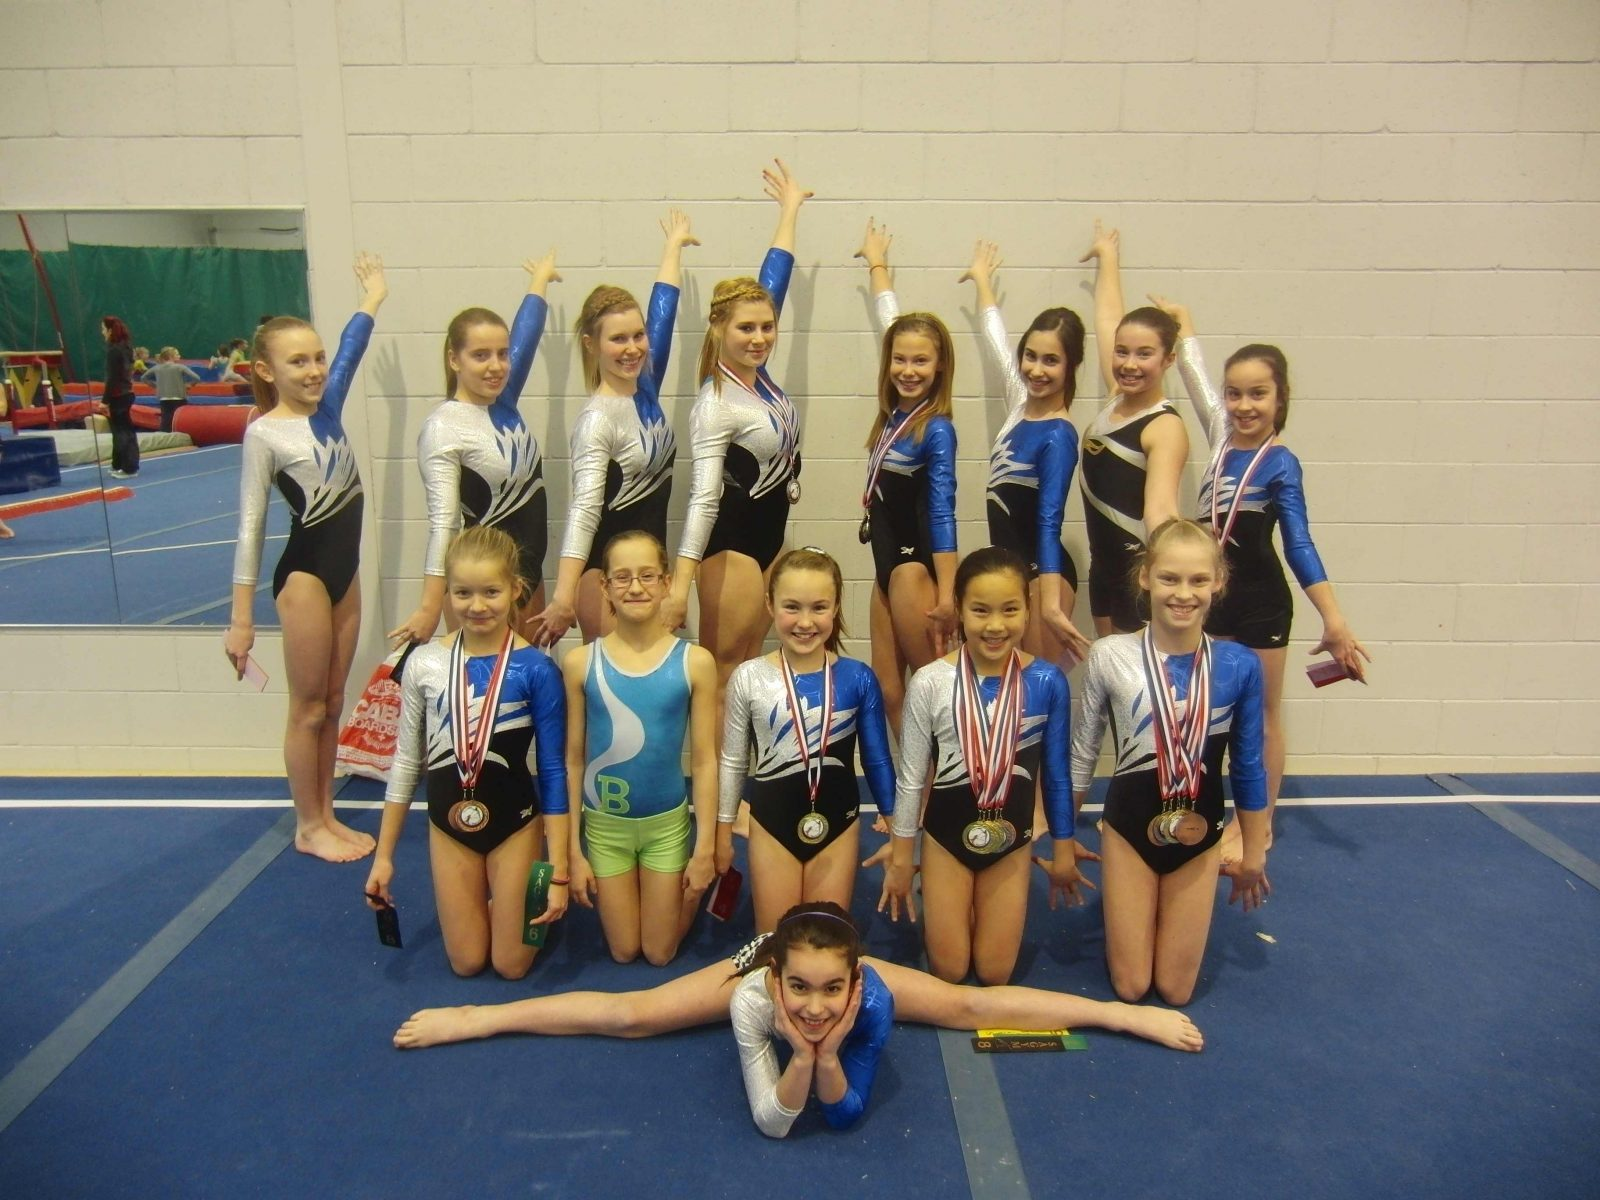 Les gymnastes drummondvilloises s'illustrent